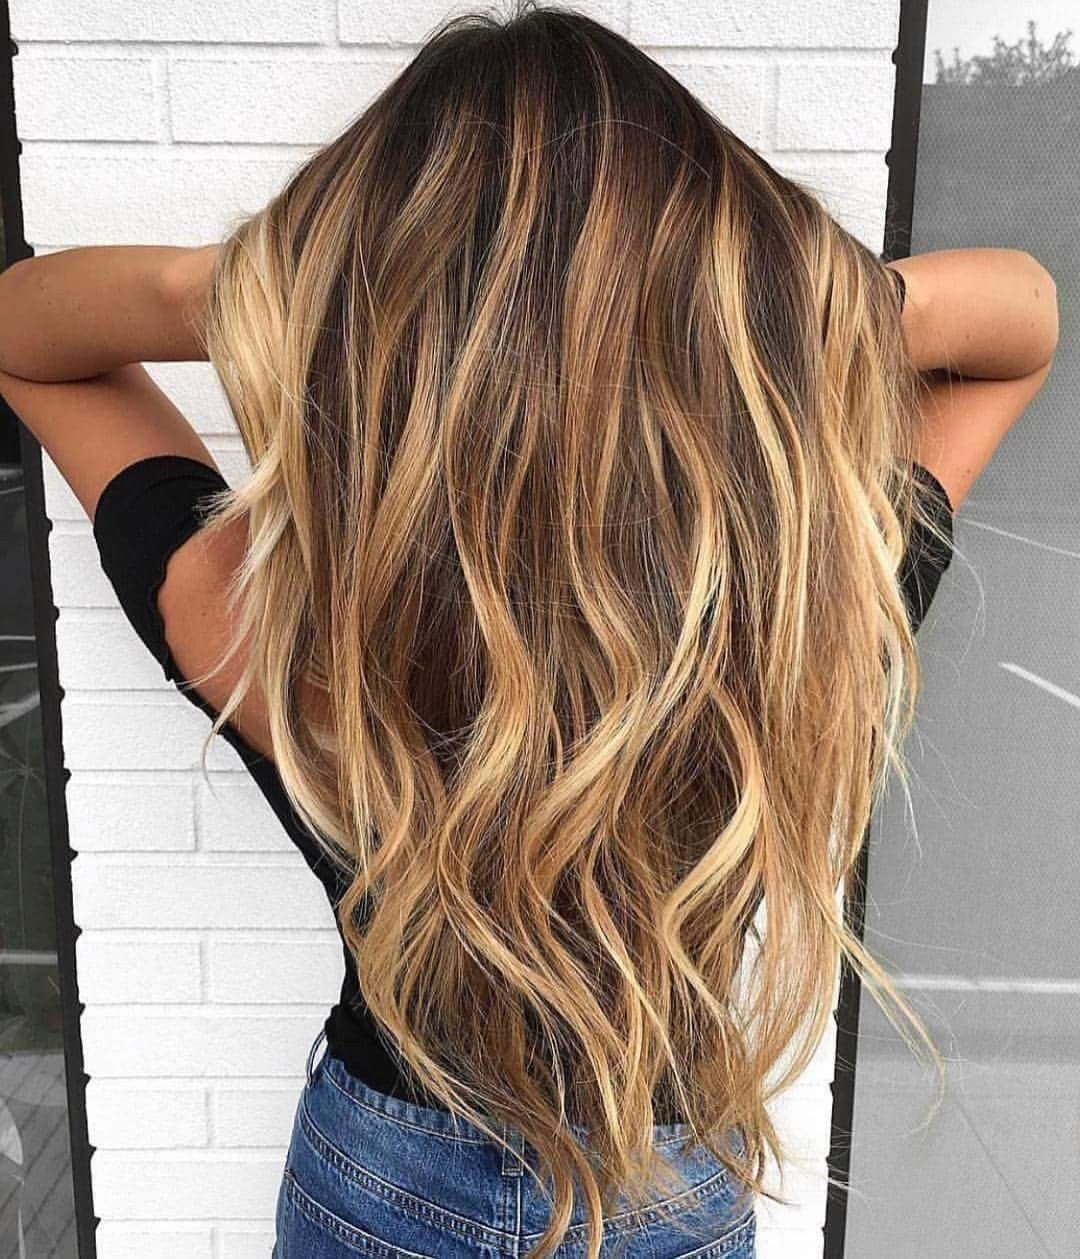 Love the hair color and the style for long hair nail care